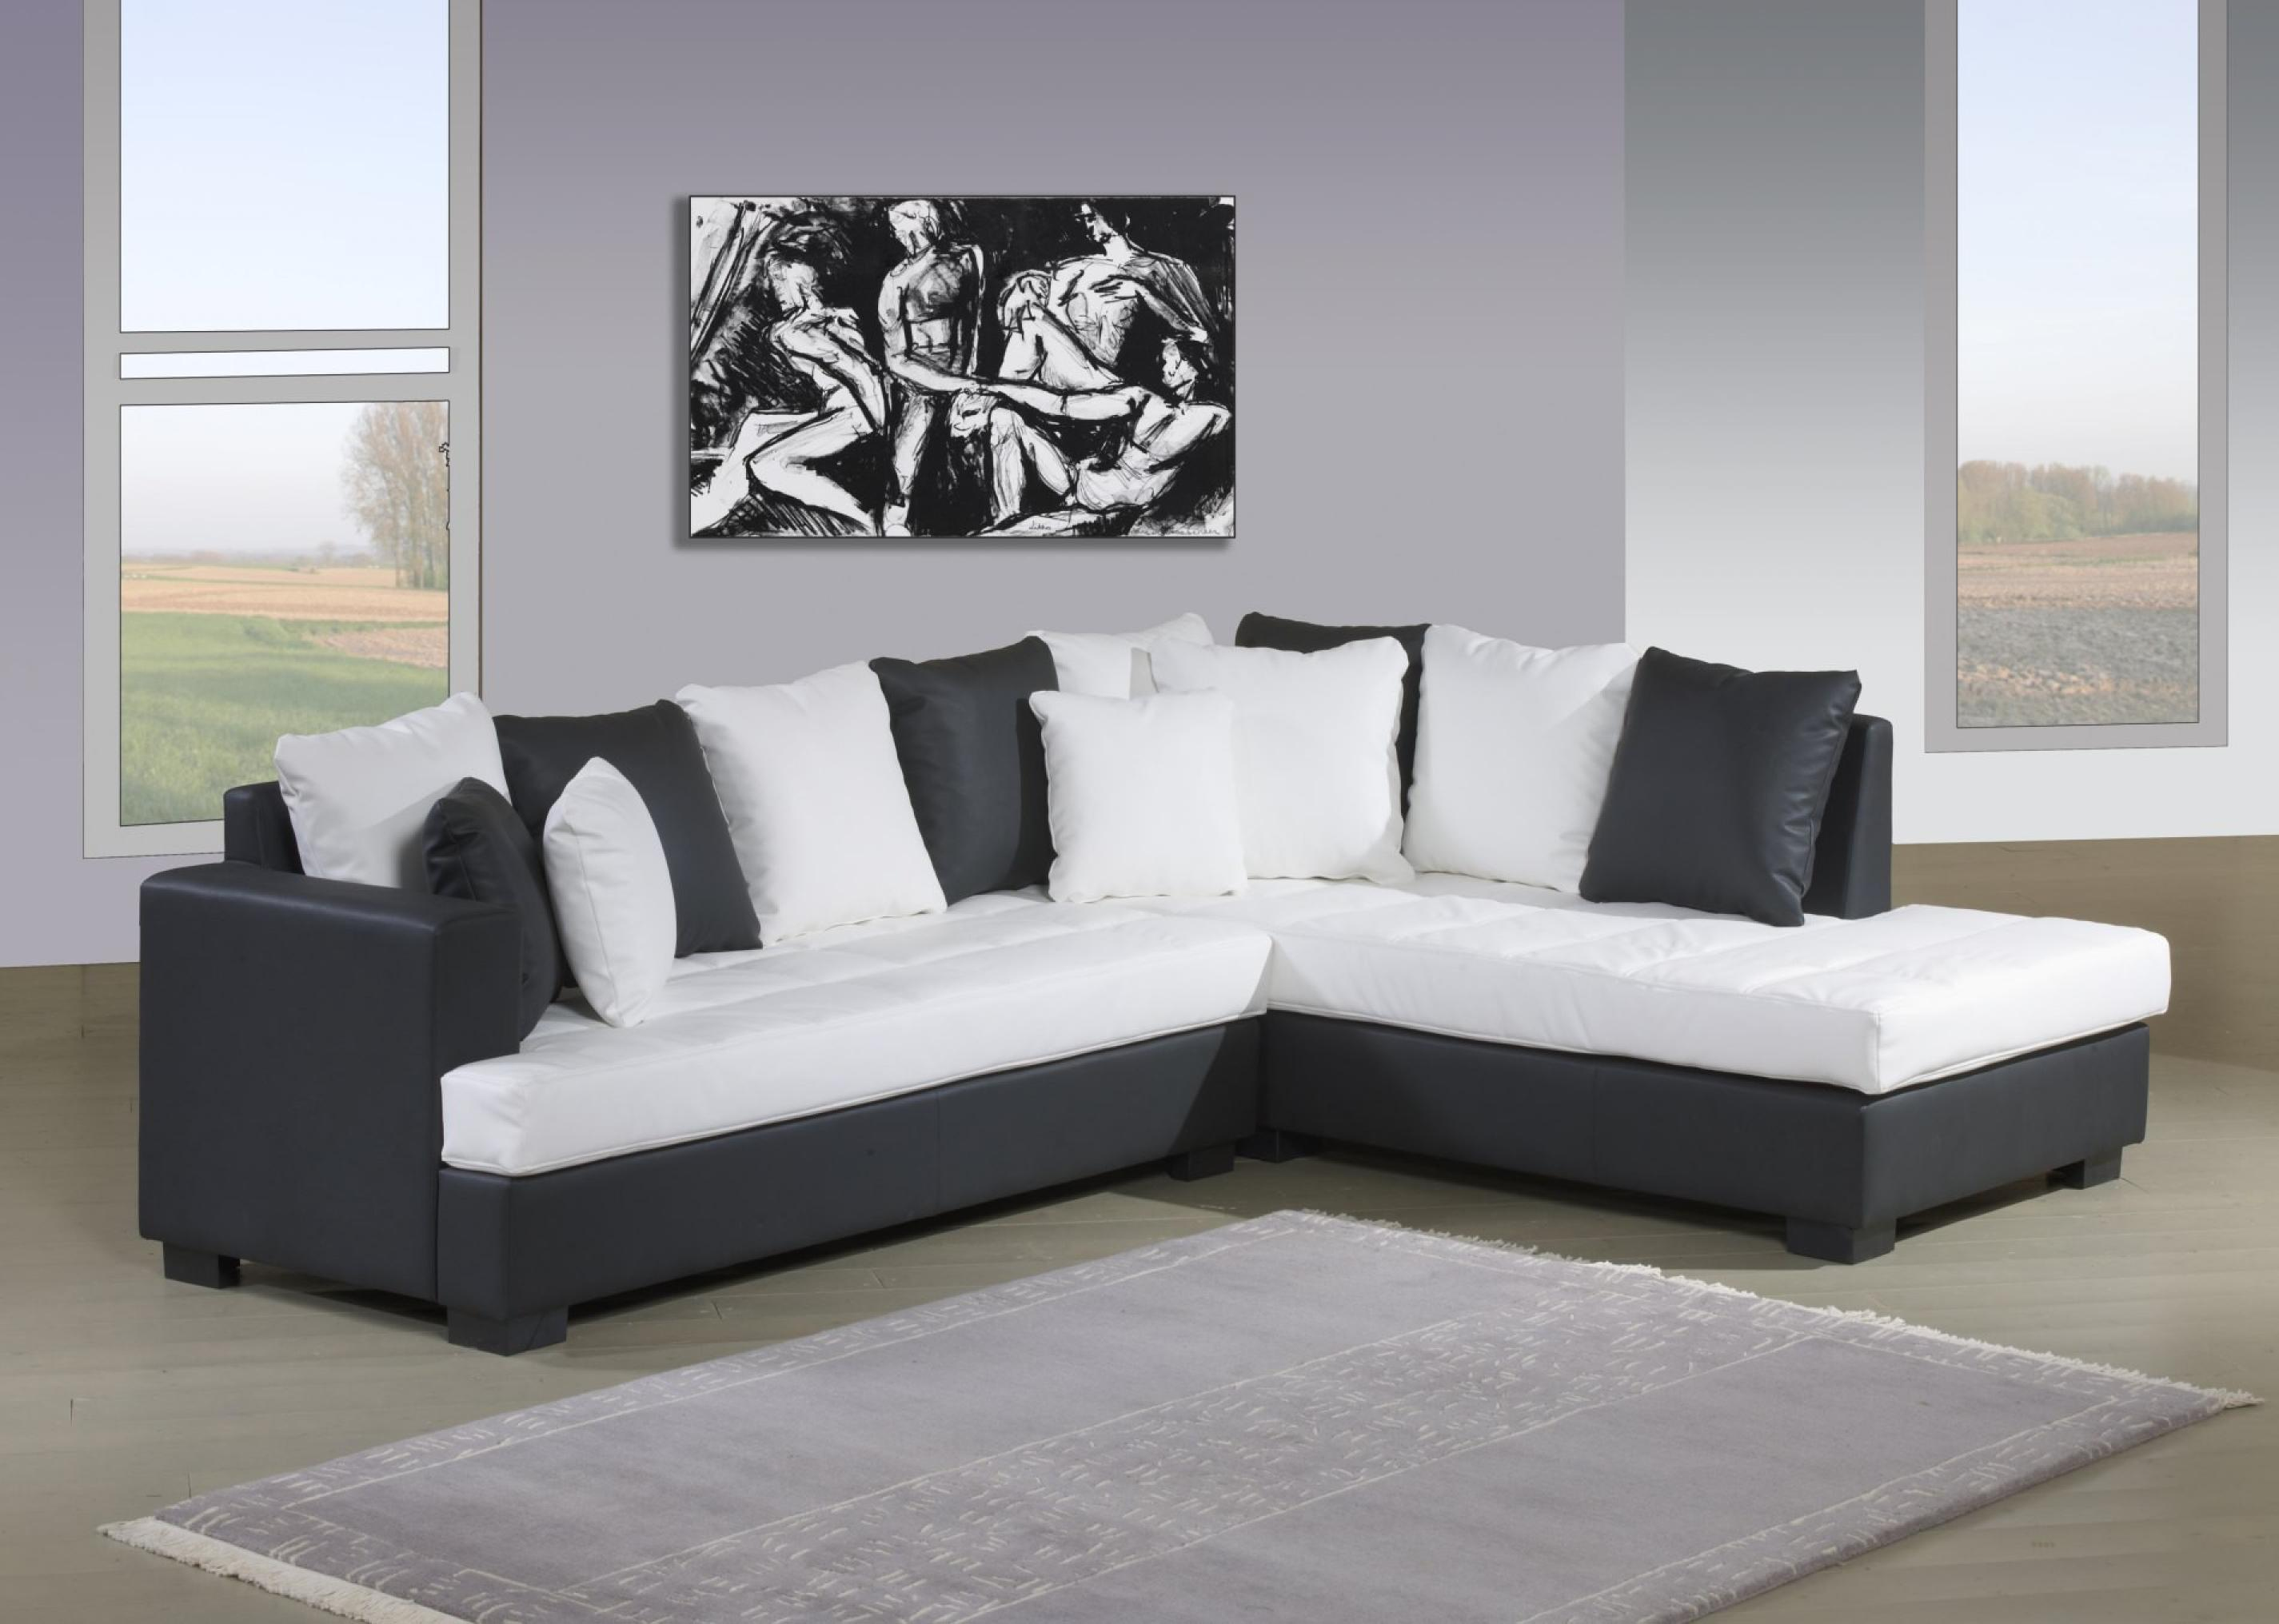 Ikea Canapé Convertible Friheten Inspirant Collection Canaps D Angle Ikea Canap Meri Nne Pas Cher Occasion with Canaps